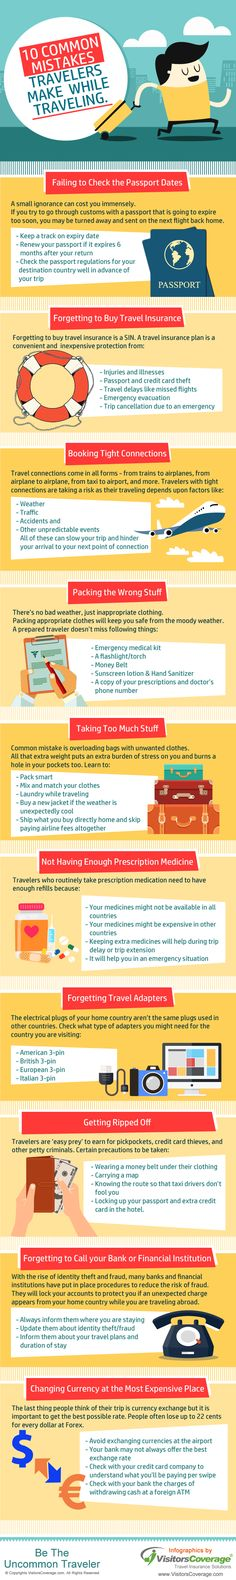 Top 10 Most Common Mistakes Travelers Make While Traveling #infographics #exploremore #travel — Lightscap3s.com